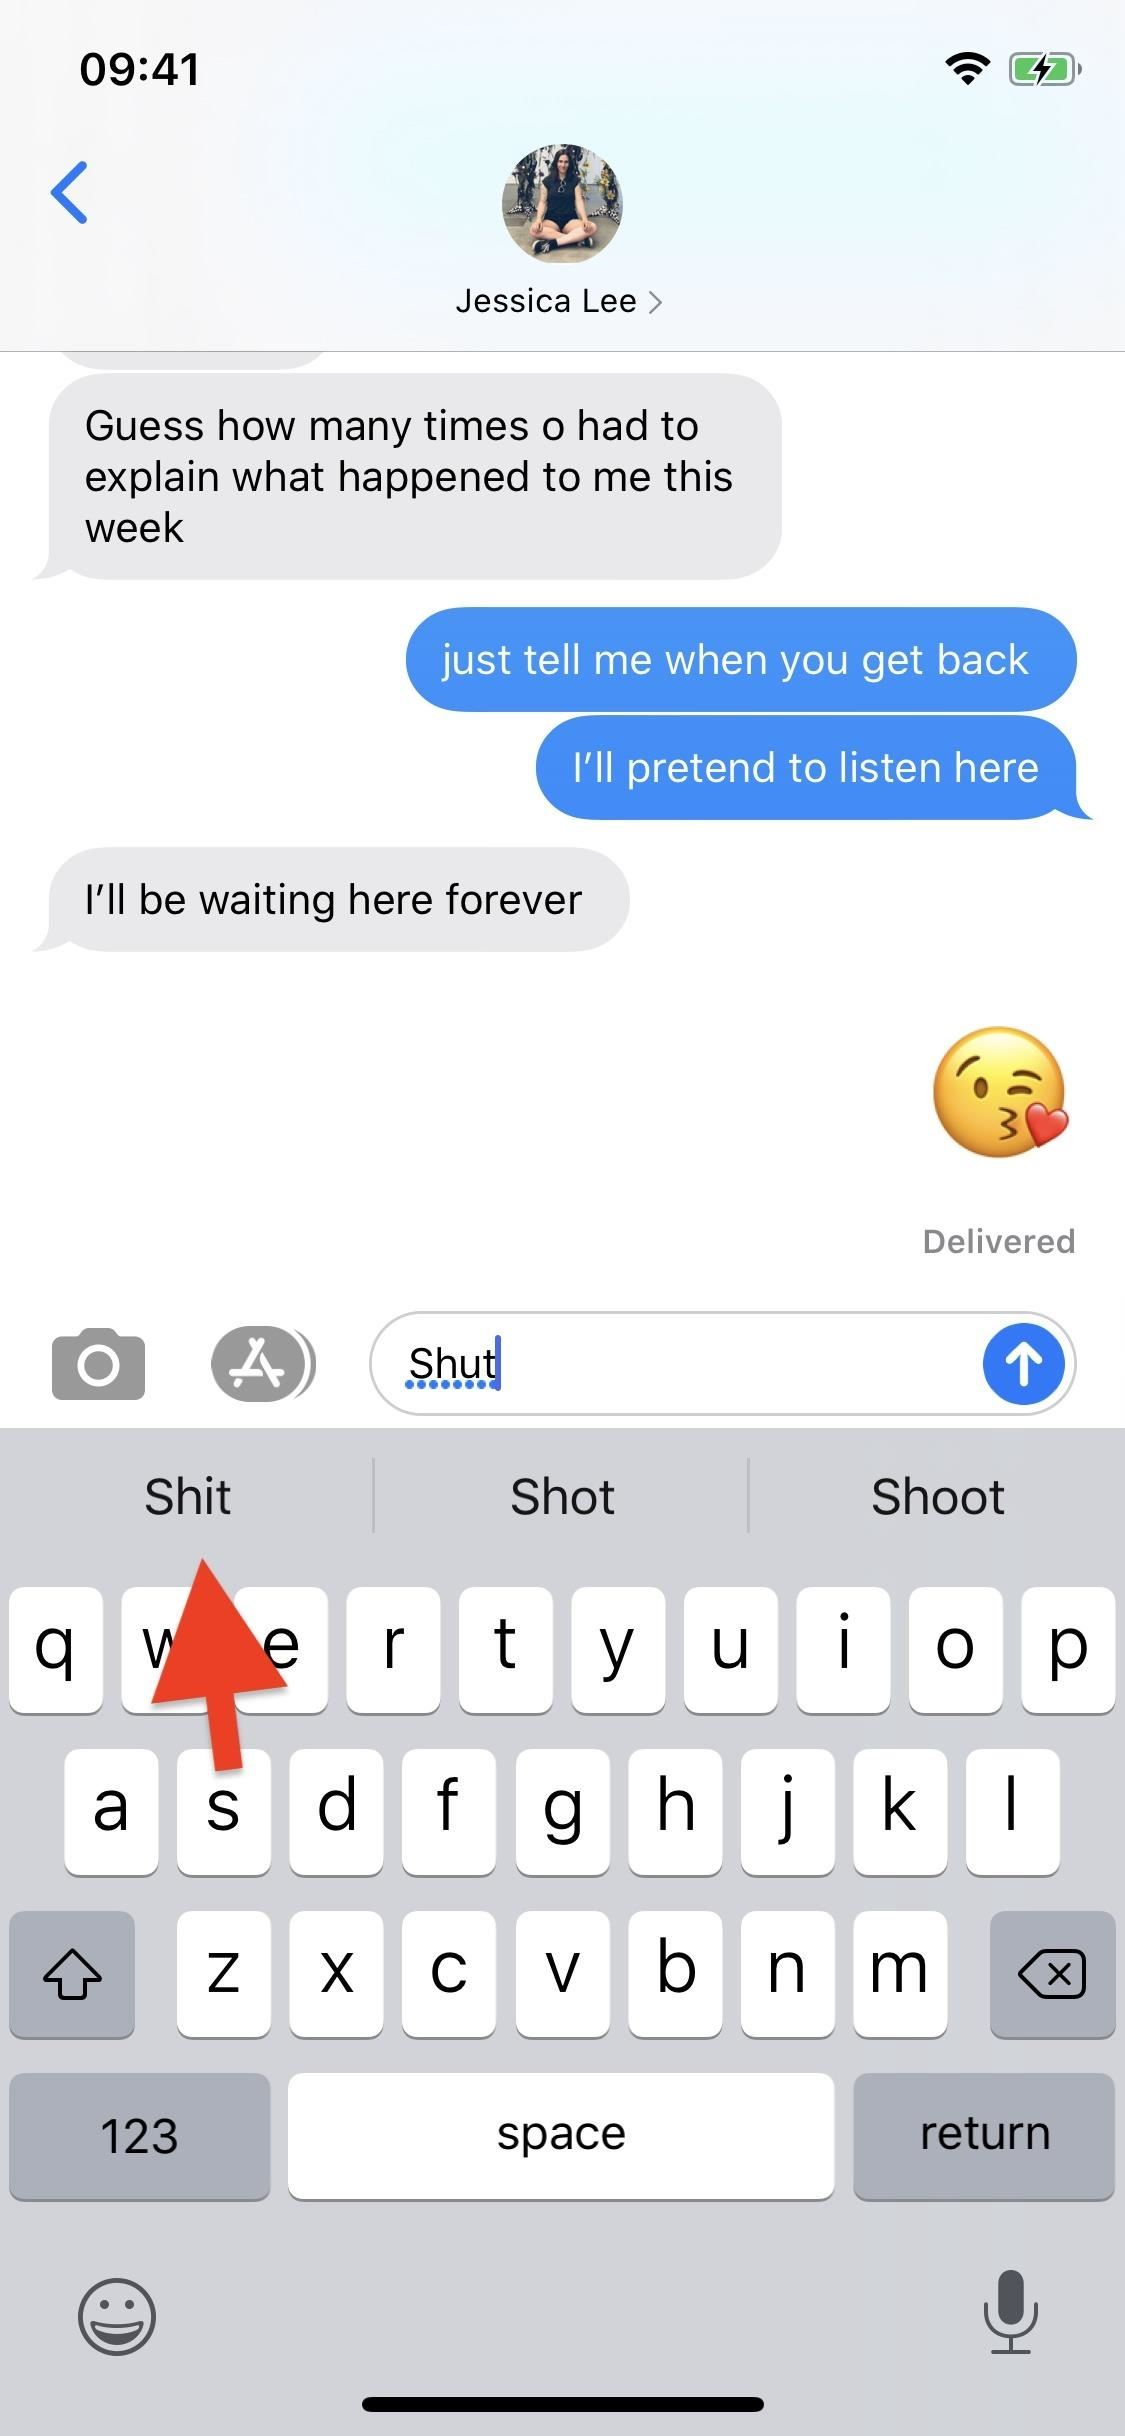 How to Type Swear Words with the Swipe-to-Type Keyboard in iOS 13